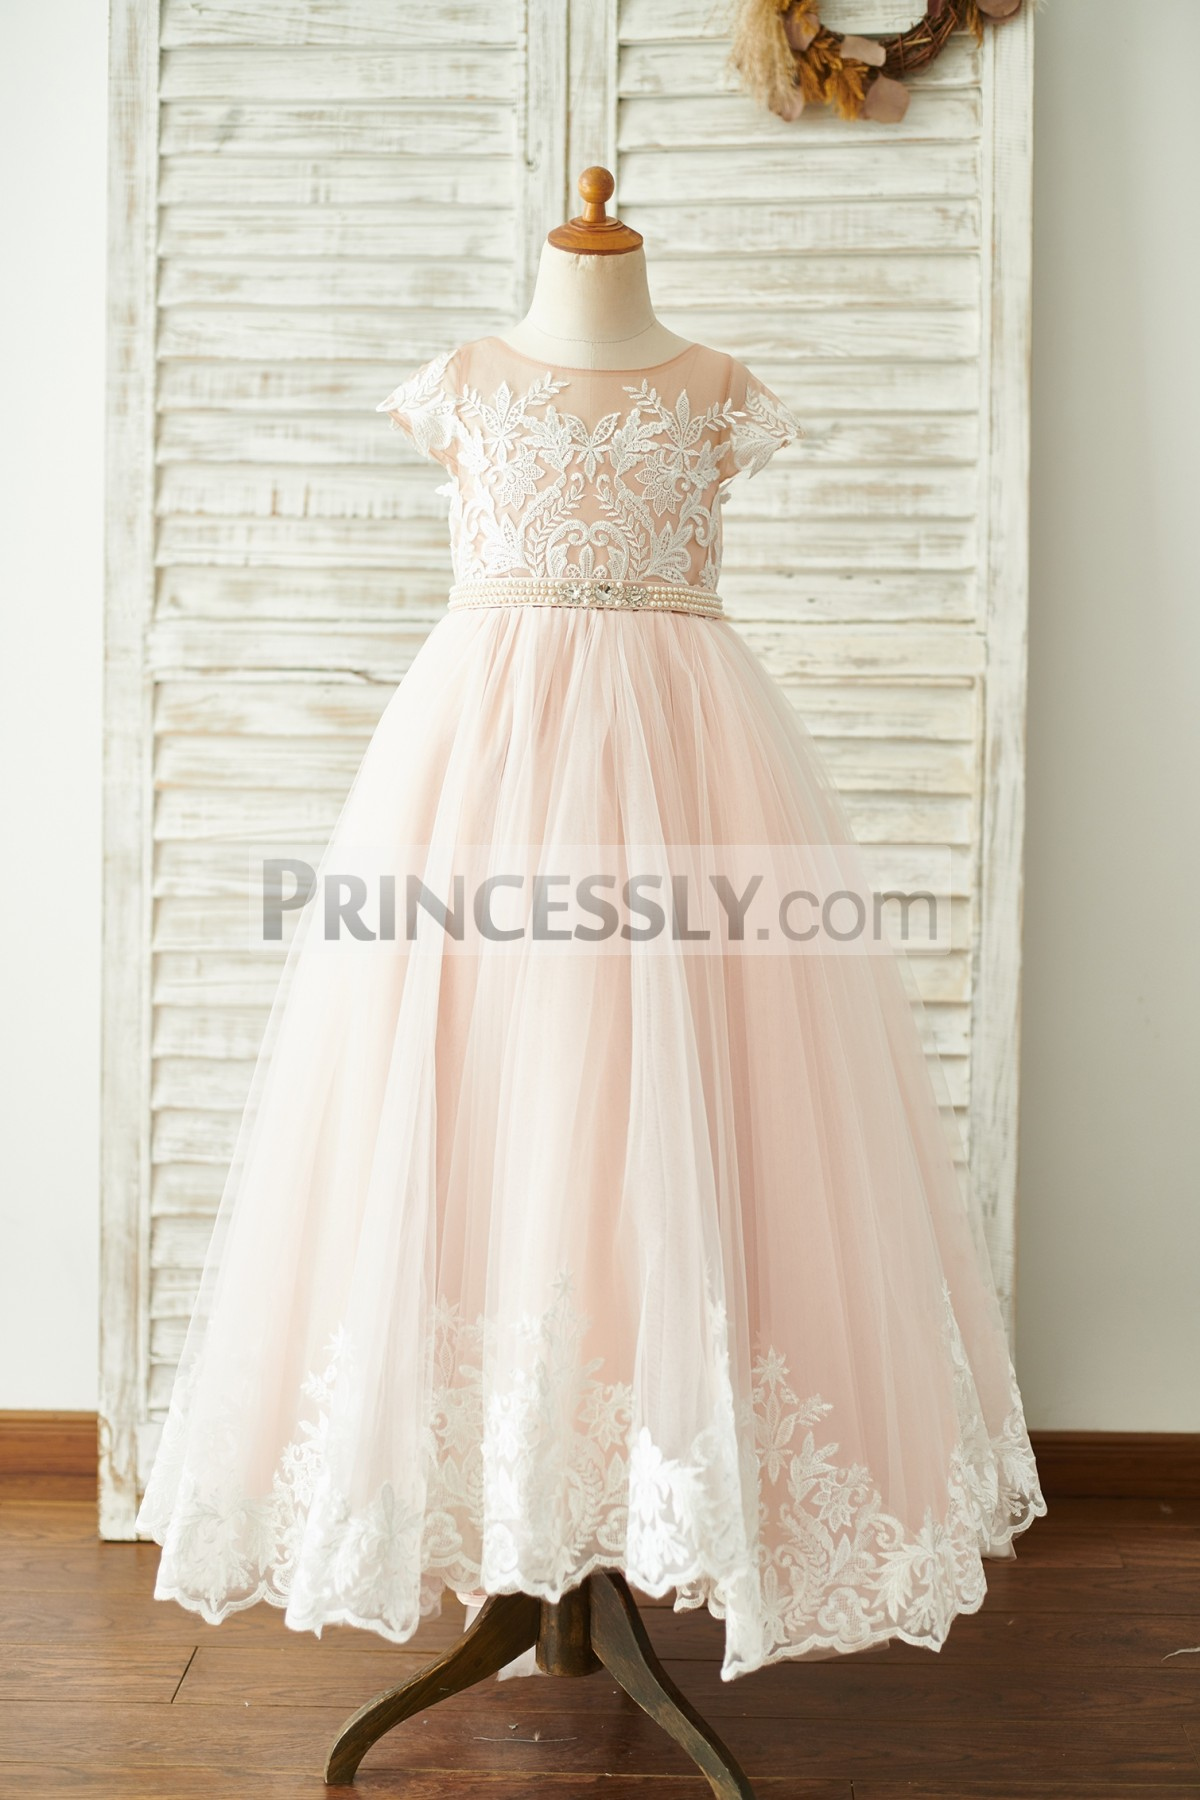 Cap Sleeves Scoop Neck Lace Tulle Flower Girl Dress